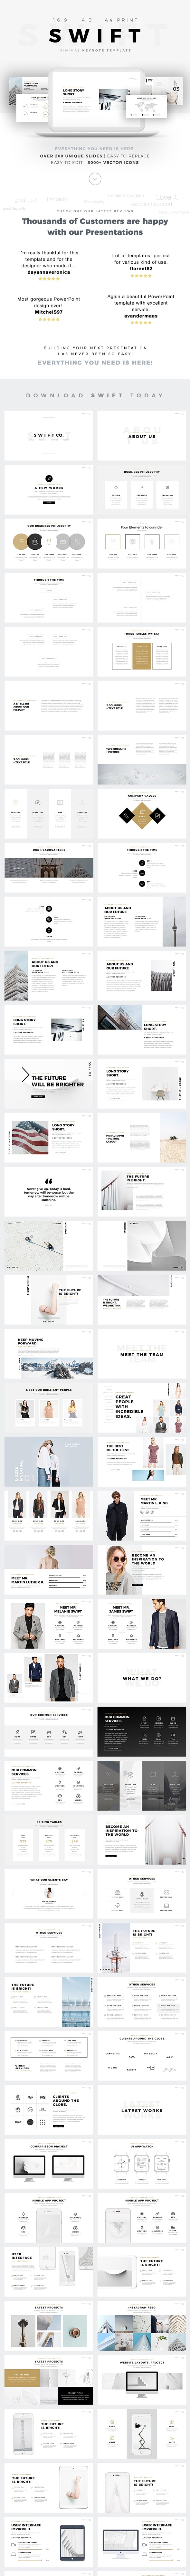 Swift Minimal Keynote Template Builder - Keynote Templates Presentation Templates